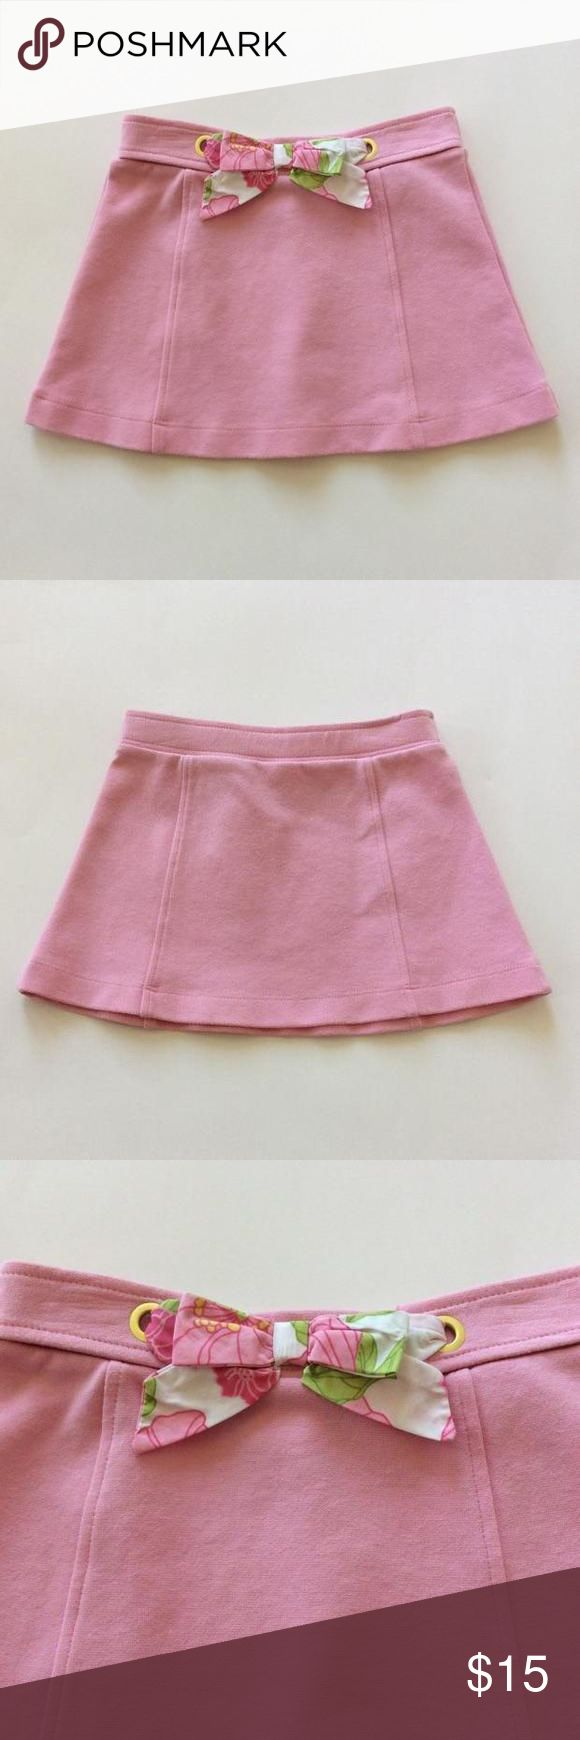 Janie and Jack skirt Janie and Jack skirt. Pink color. A line styling. 69 cotton 27 polyester 4 spandex. Size 6-12 mths. Like new condition. Janie and Jack Bottoms Skirts